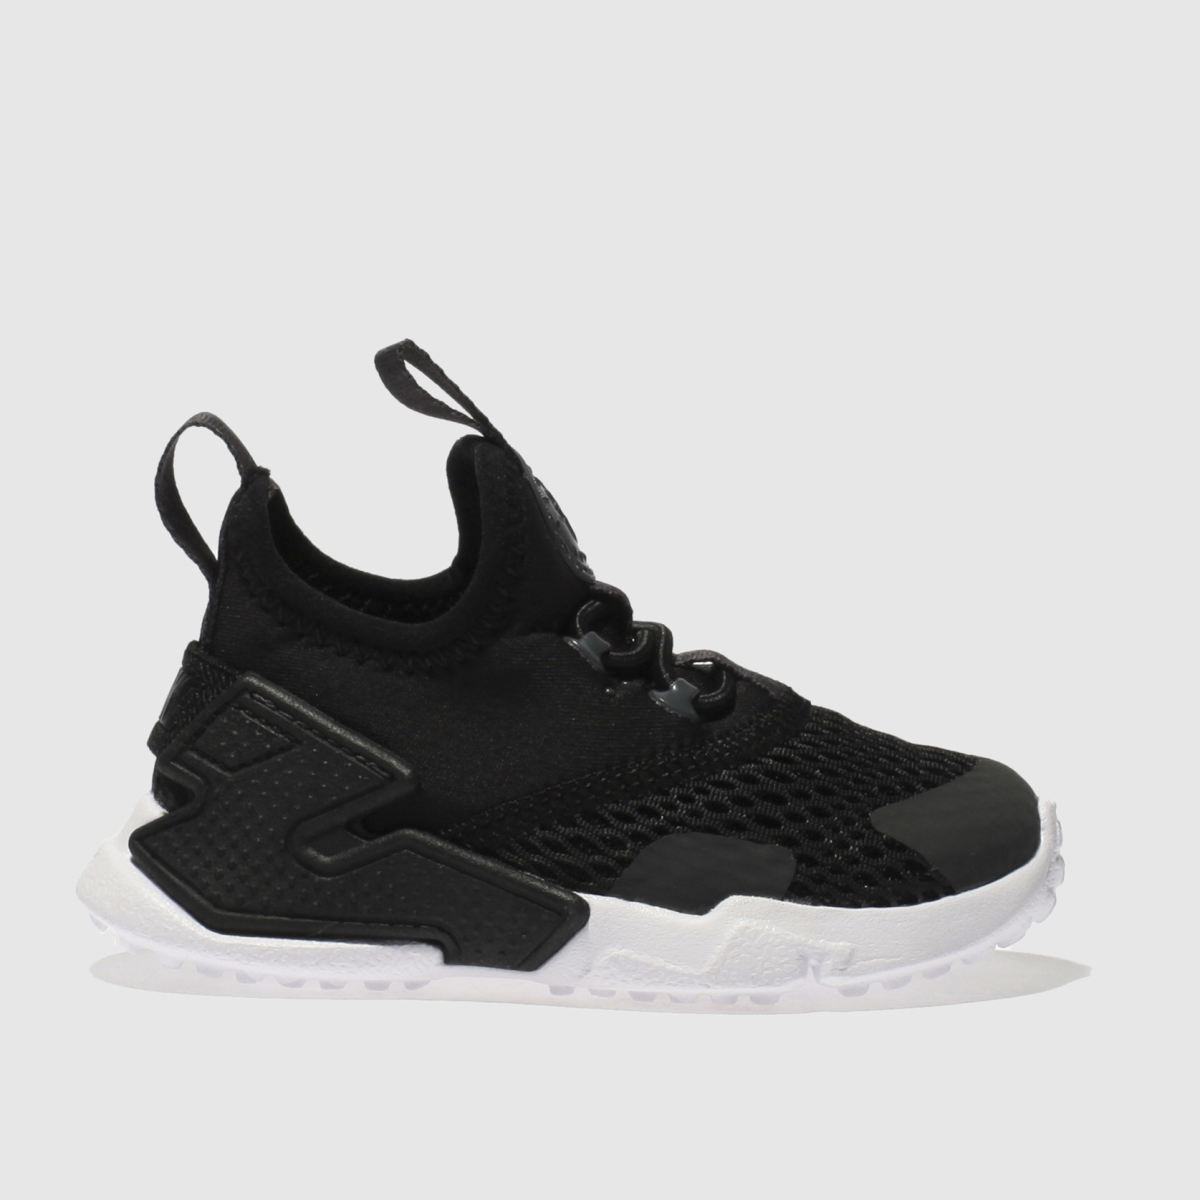 Nike Black & Grey Huarache Drift Unisex Toddler Toddler